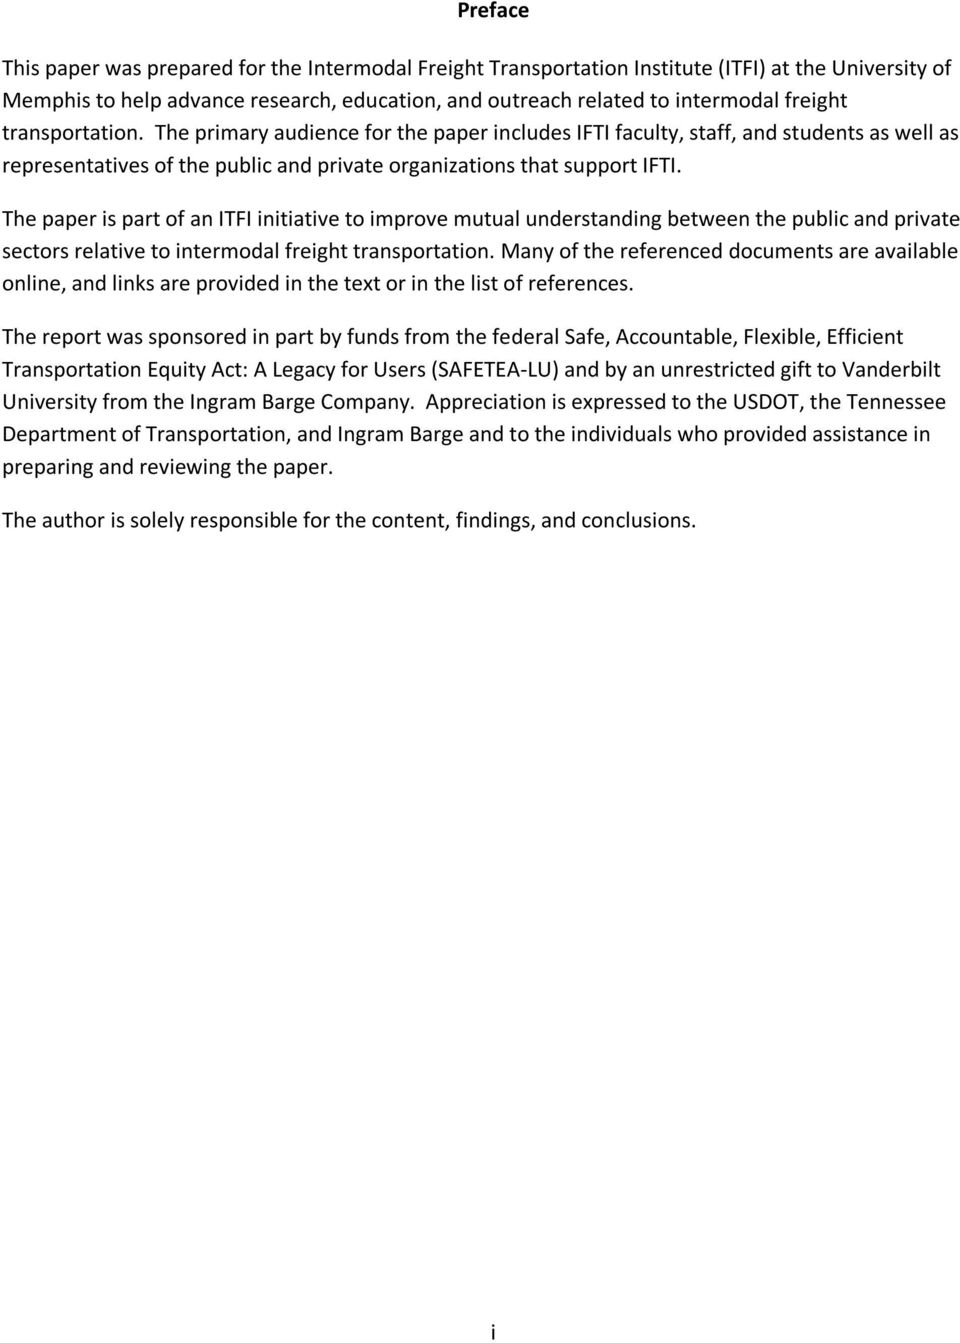 The paper is part of an ITFI initiative to improve mutual understanding between the public and private sectors relative to intermodal freight transportation.